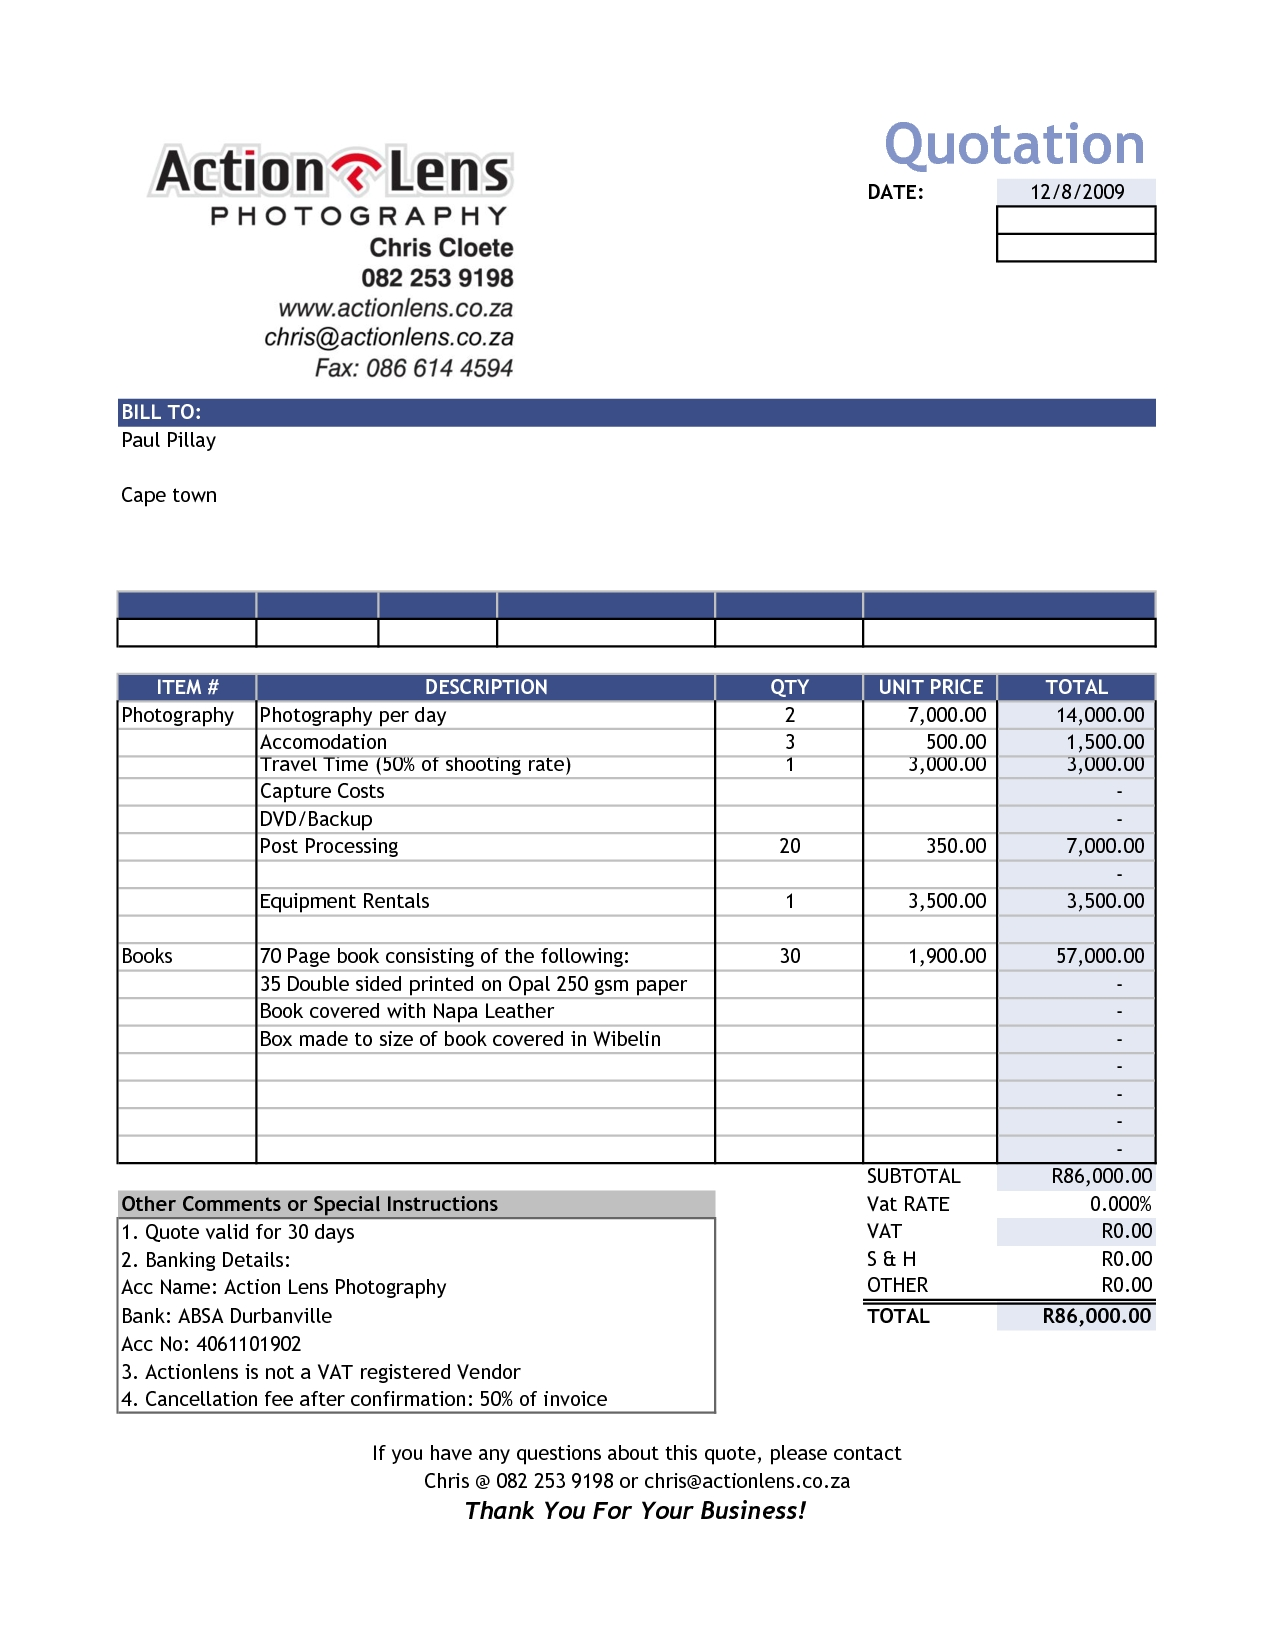 Sales Invoice Templates Invoice Template In Word FormatSales – Sales Invoice Example